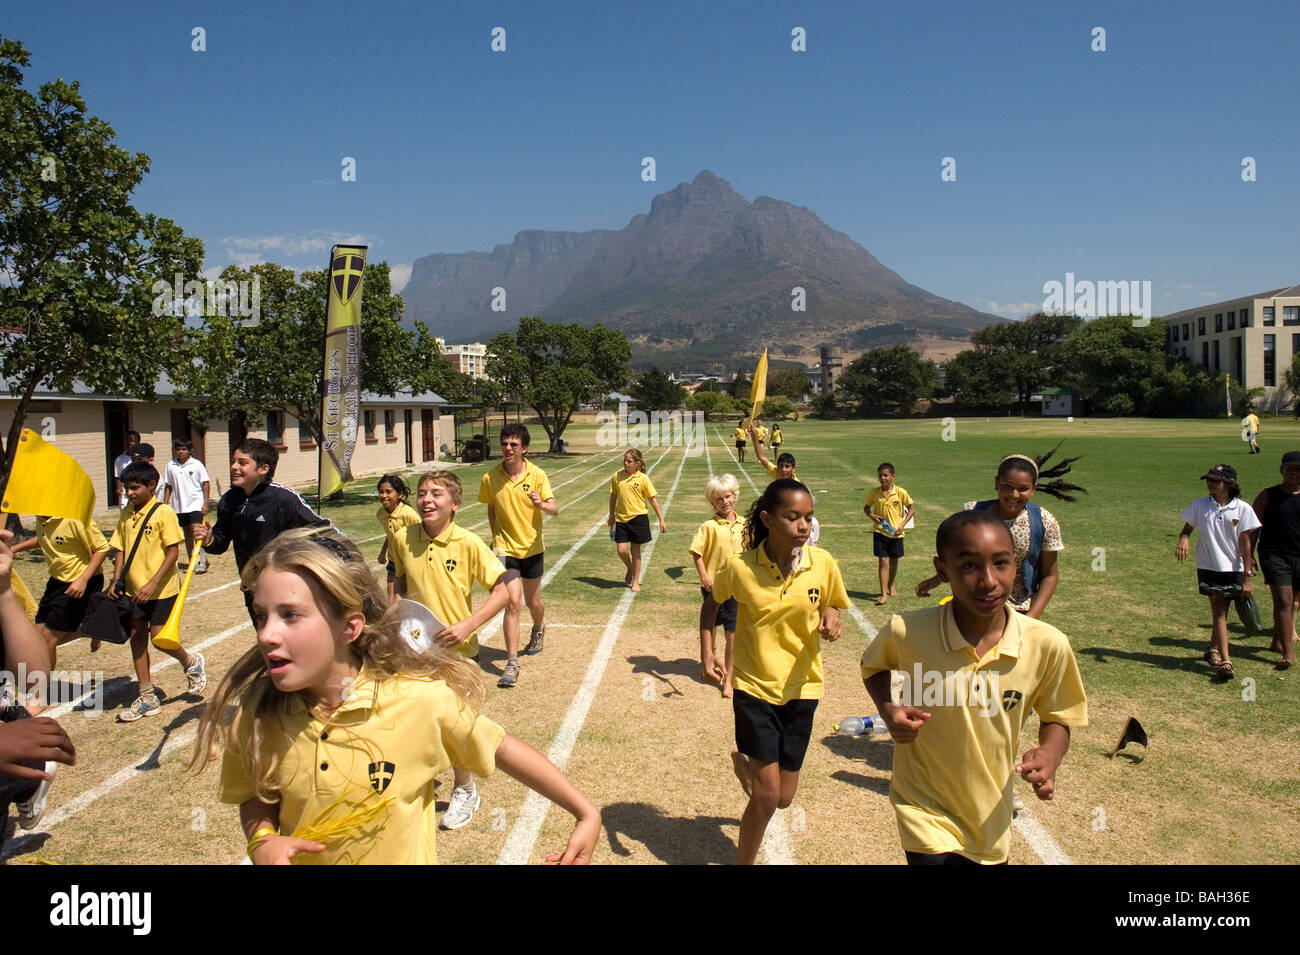 Athletics gala at St Georges School Cape Town South Africa - Stock Image